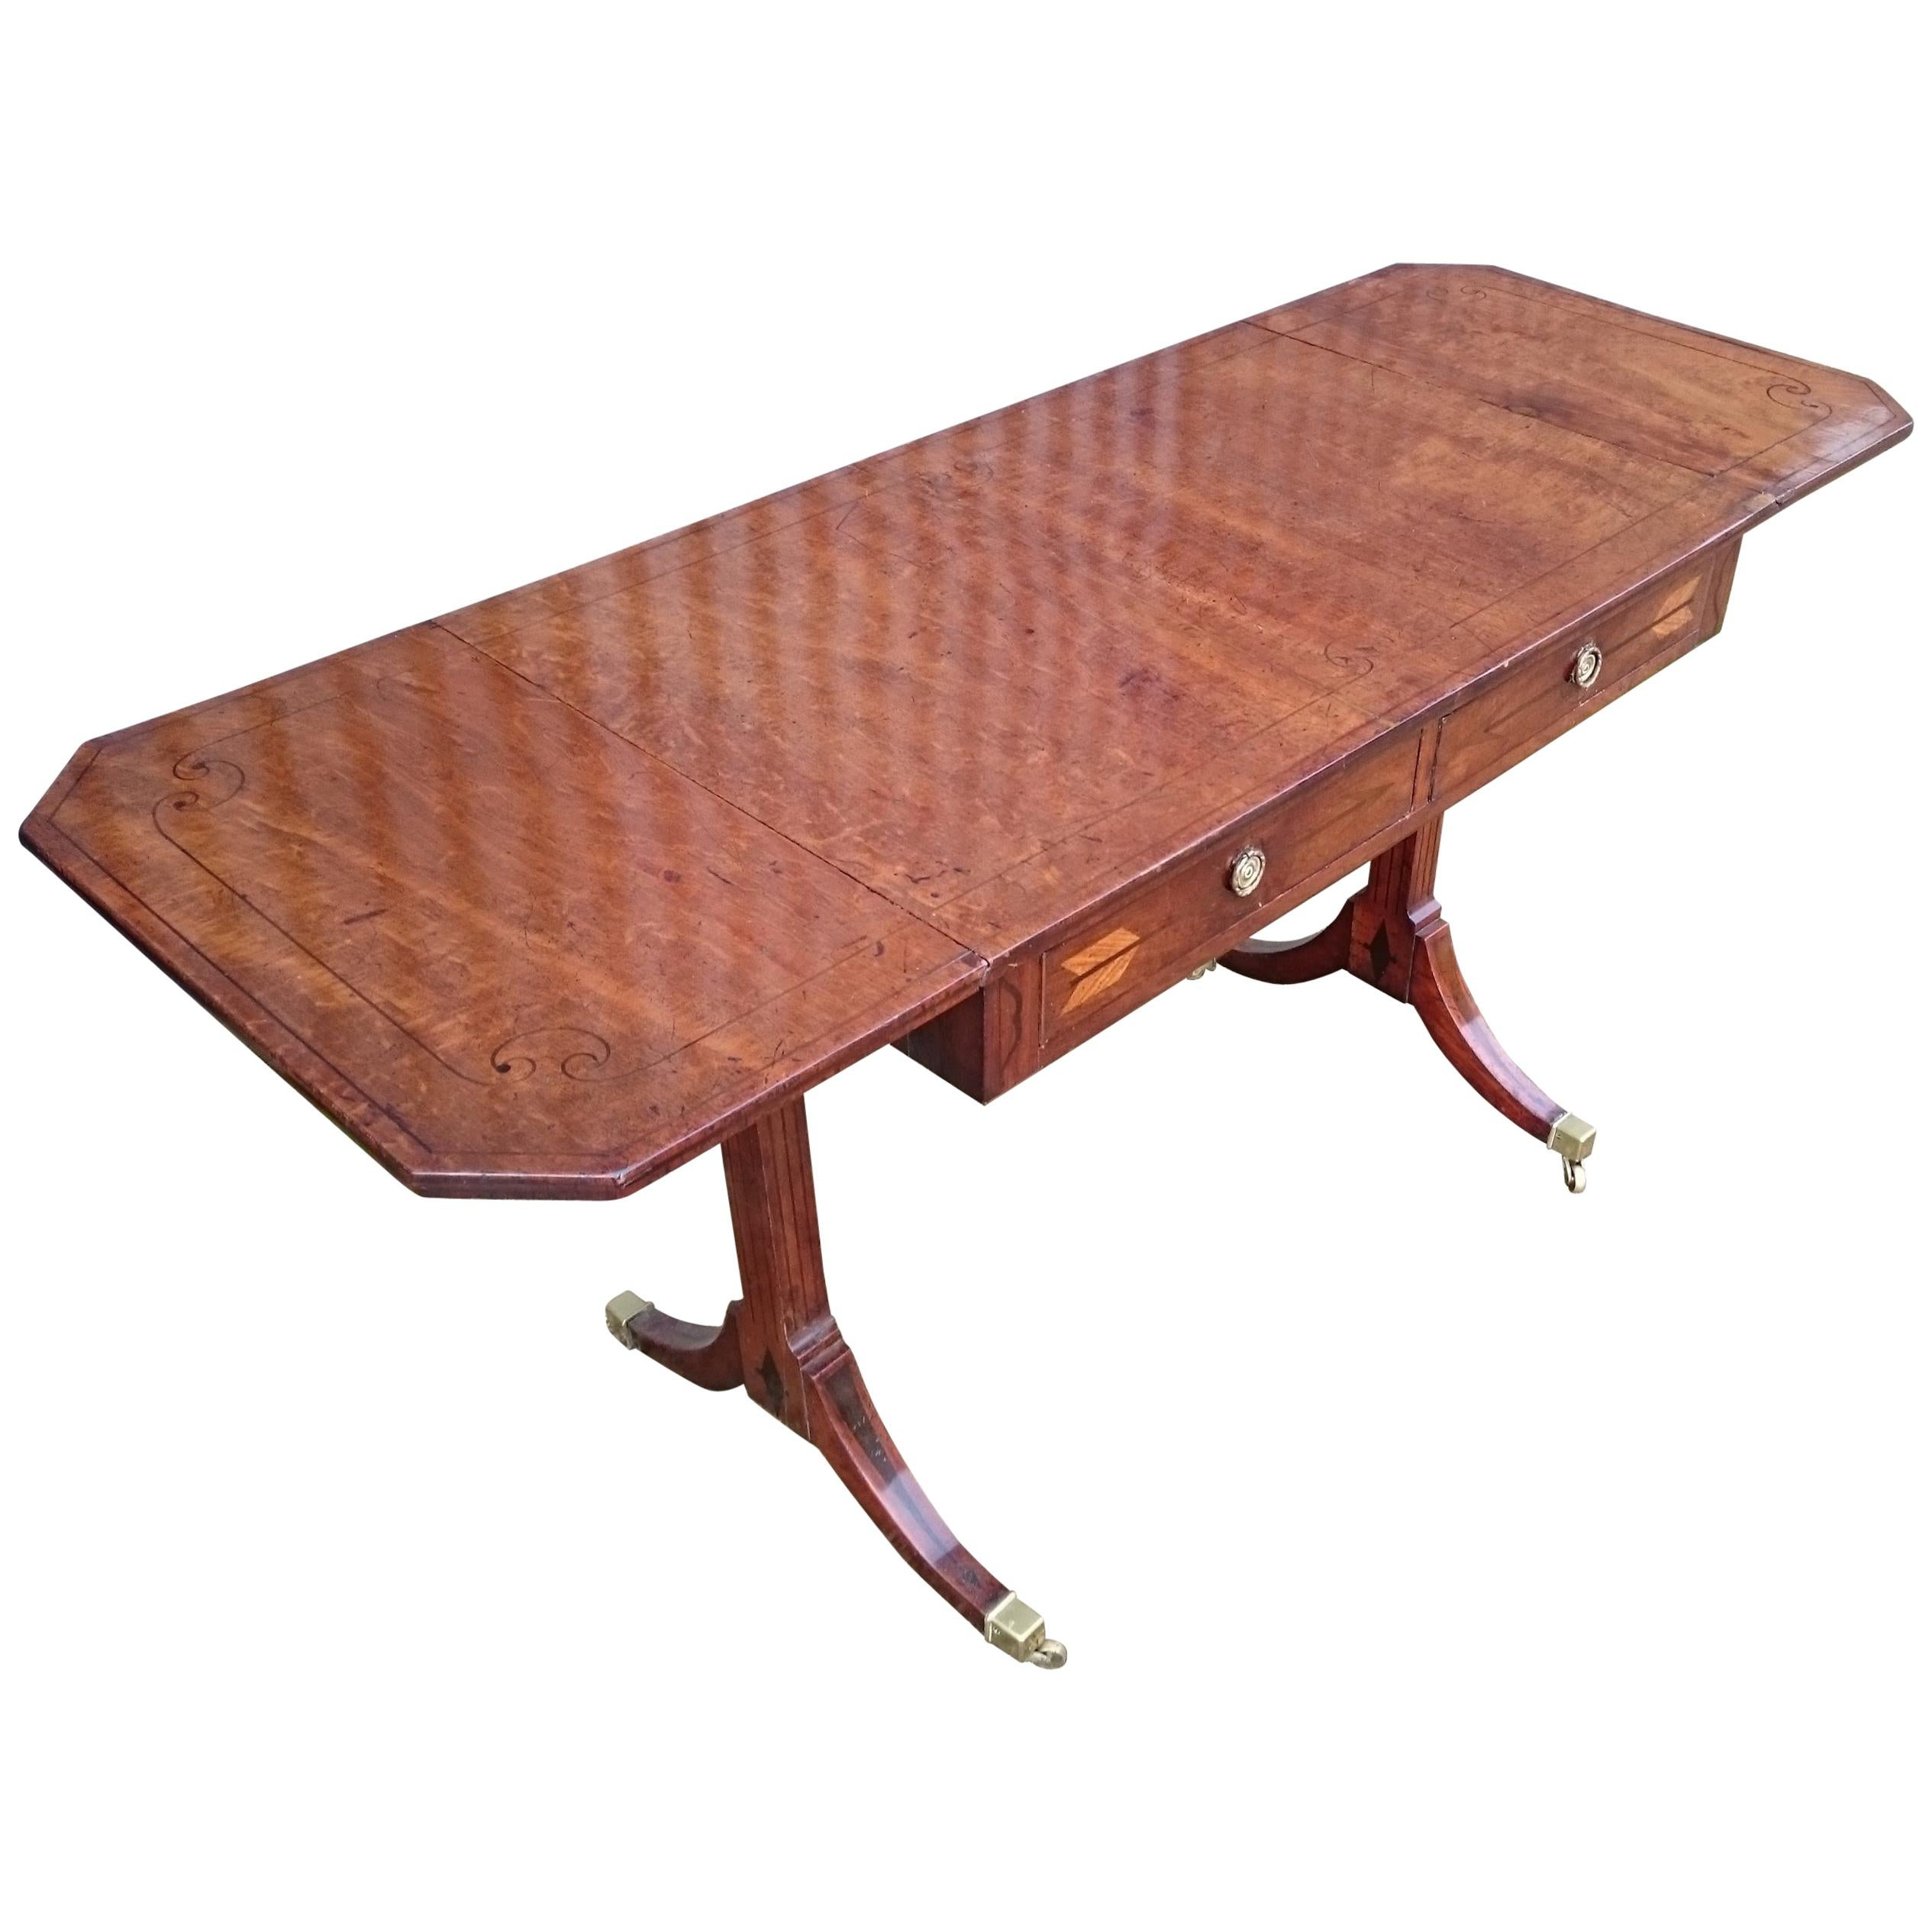 Early 19th Century George III Period Mahogany Antique Sofa Table